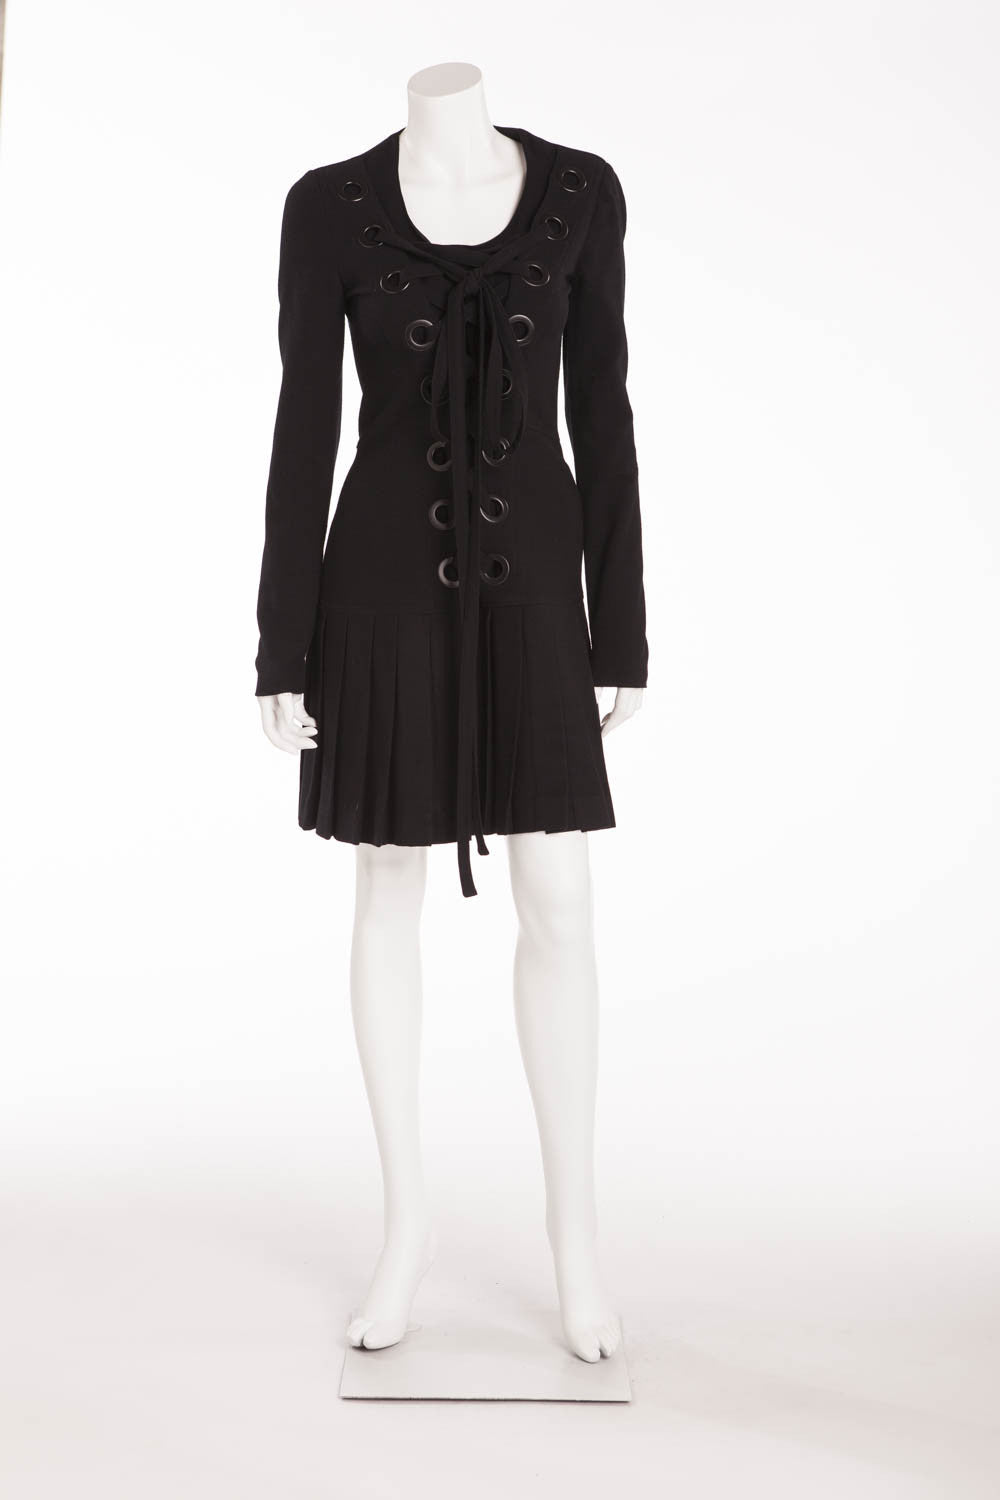 Givenchy - Black Wool Lace Up Dress - FR 40